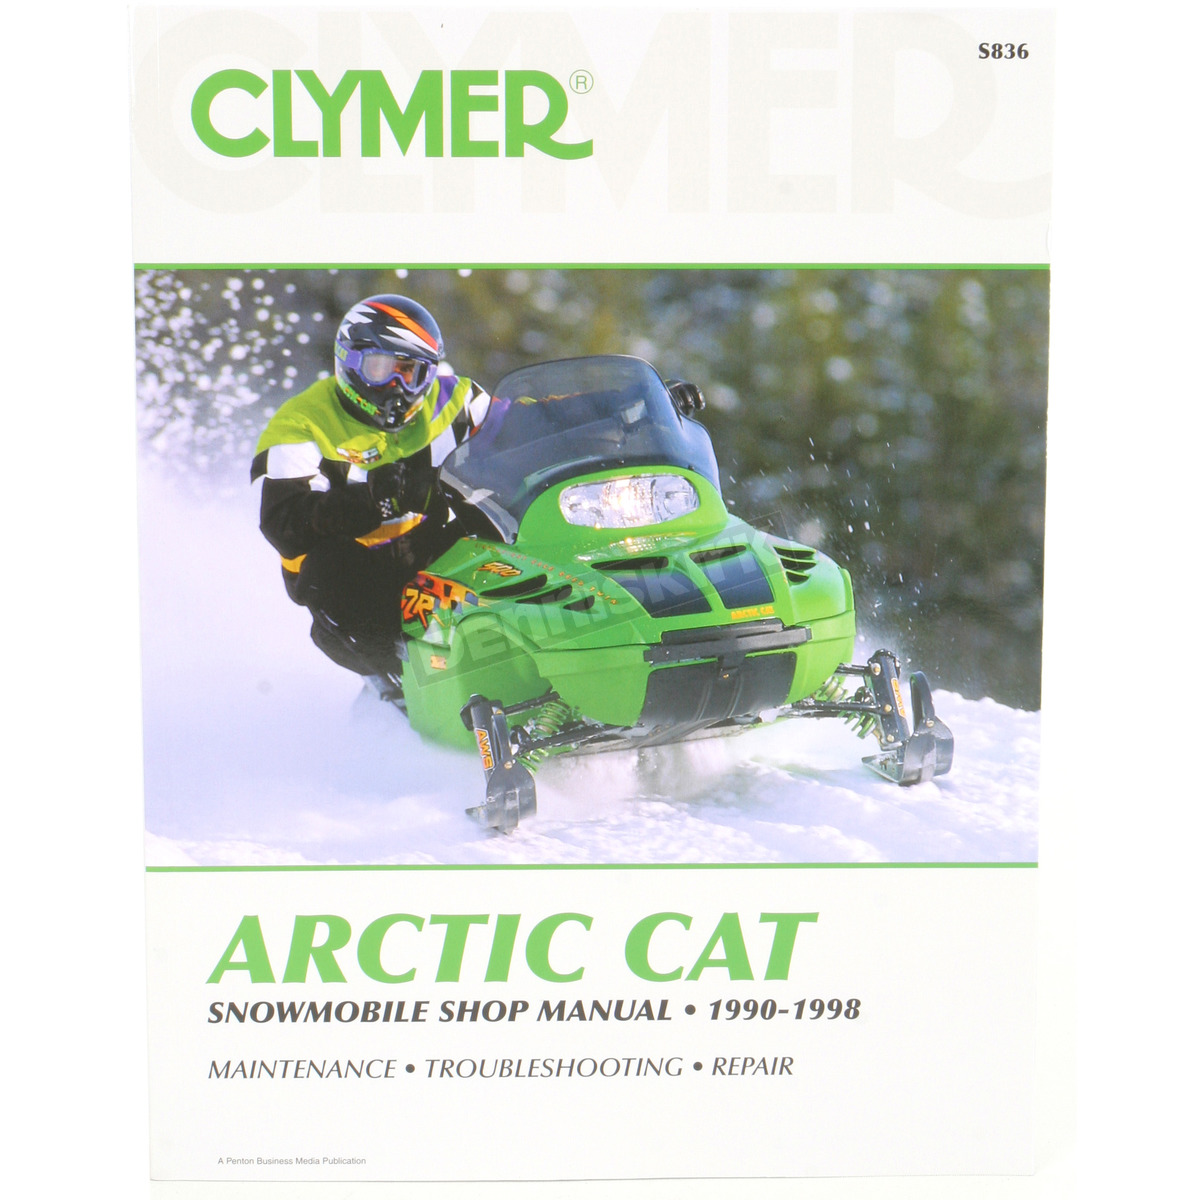 Arctic Cat Service Manual - S836 ...